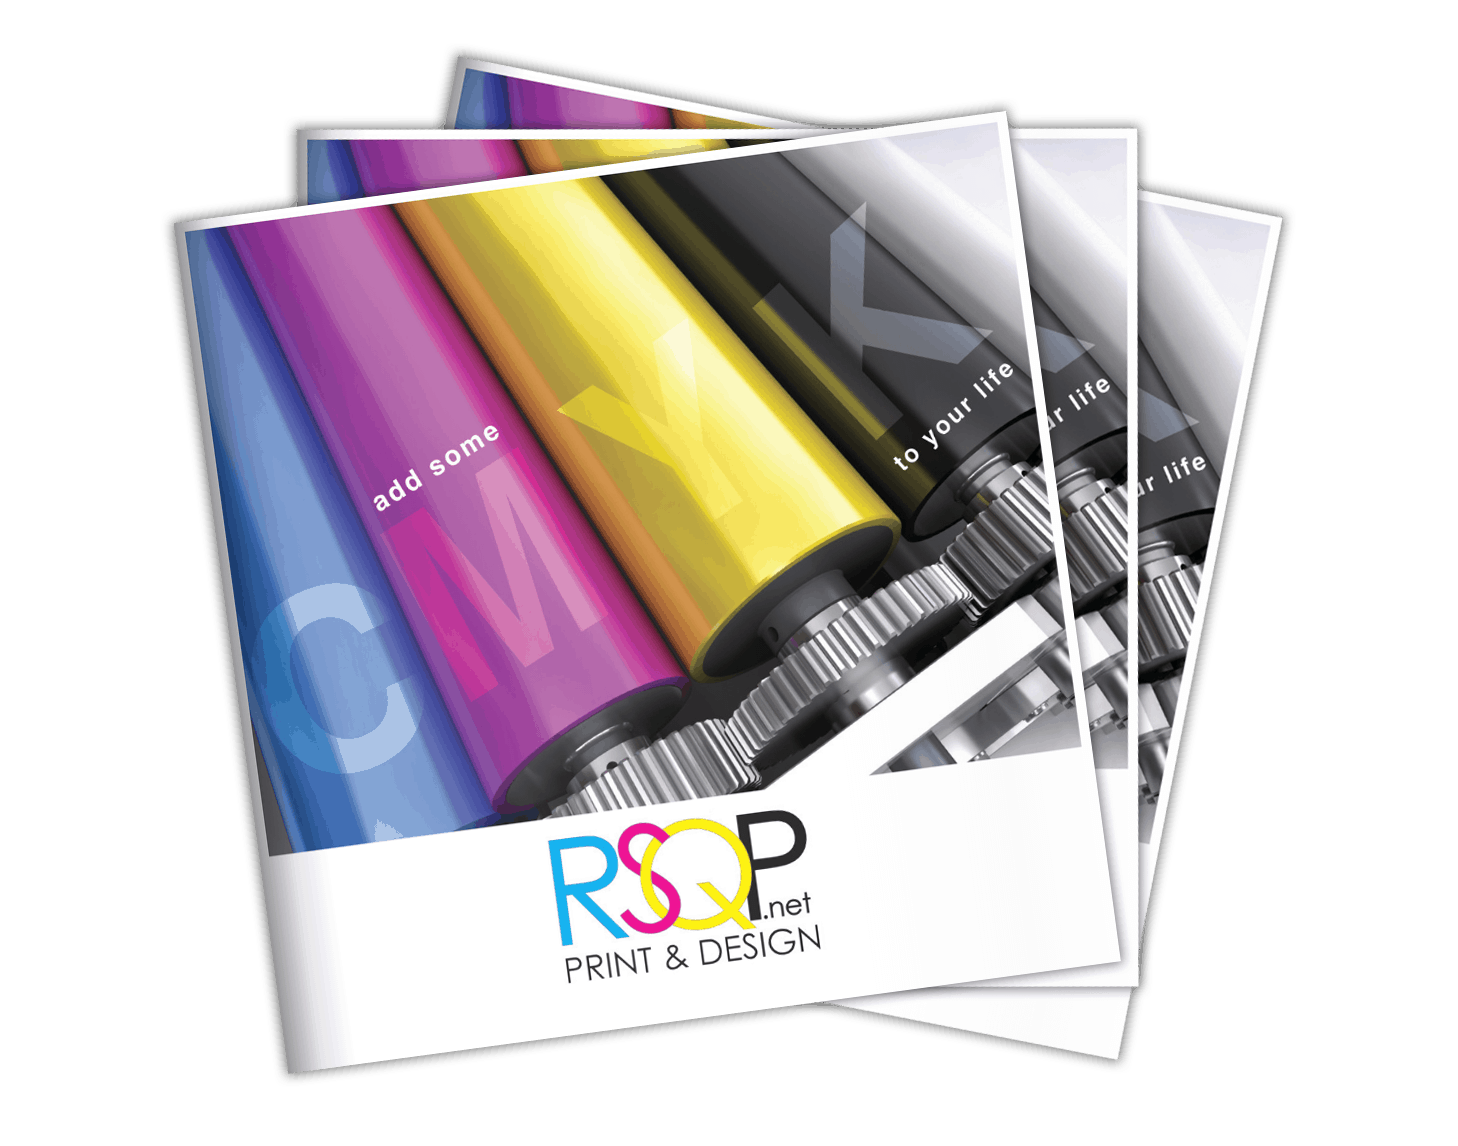 RSQP Capabilities Booklet